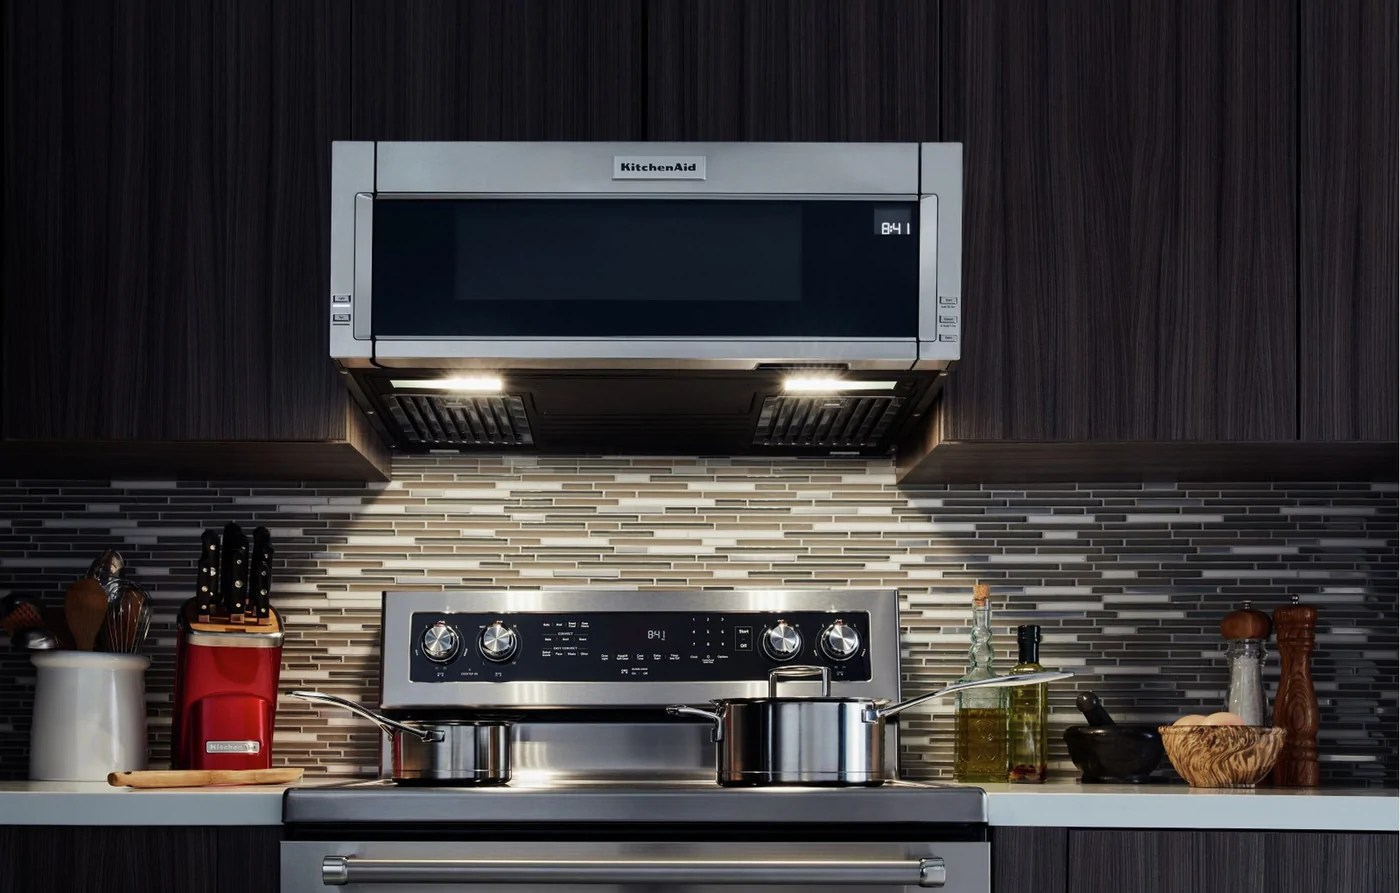 kitchenaid stainless steel low profile over the range microwave and hood combination 1 1 cu ft ykmls311hss